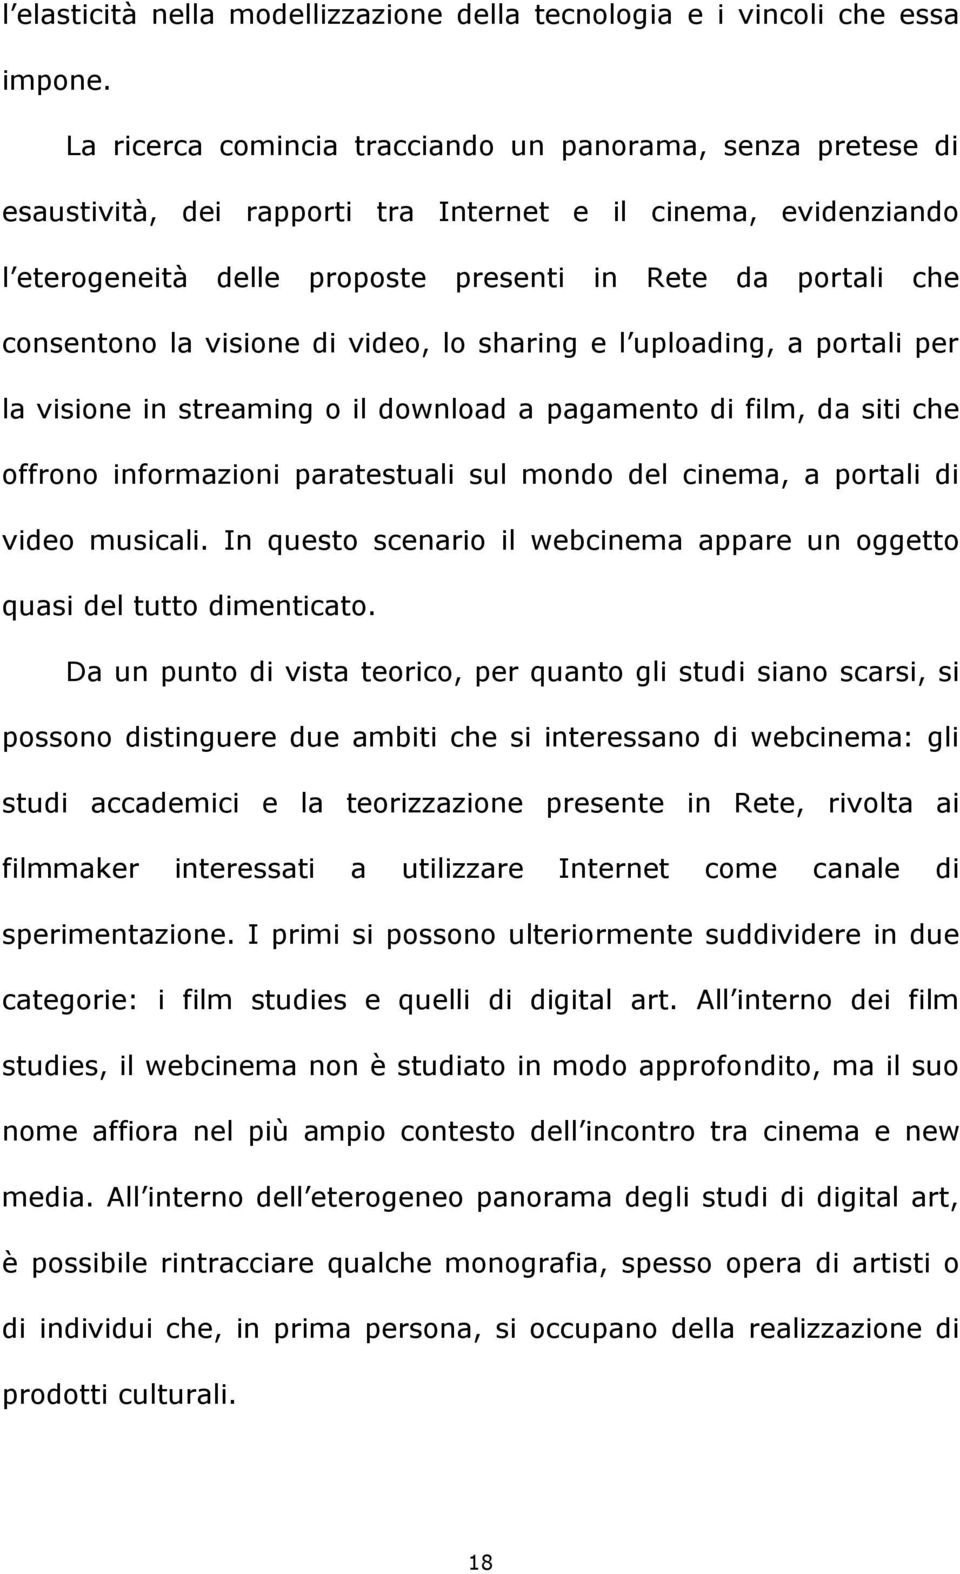 la visione di video, lo sharing e l uploading, a portali per la visione in streaming o il download a pagamento di film, da siti che offrono informazioni paratestuali sul mondo del cinema, a portali